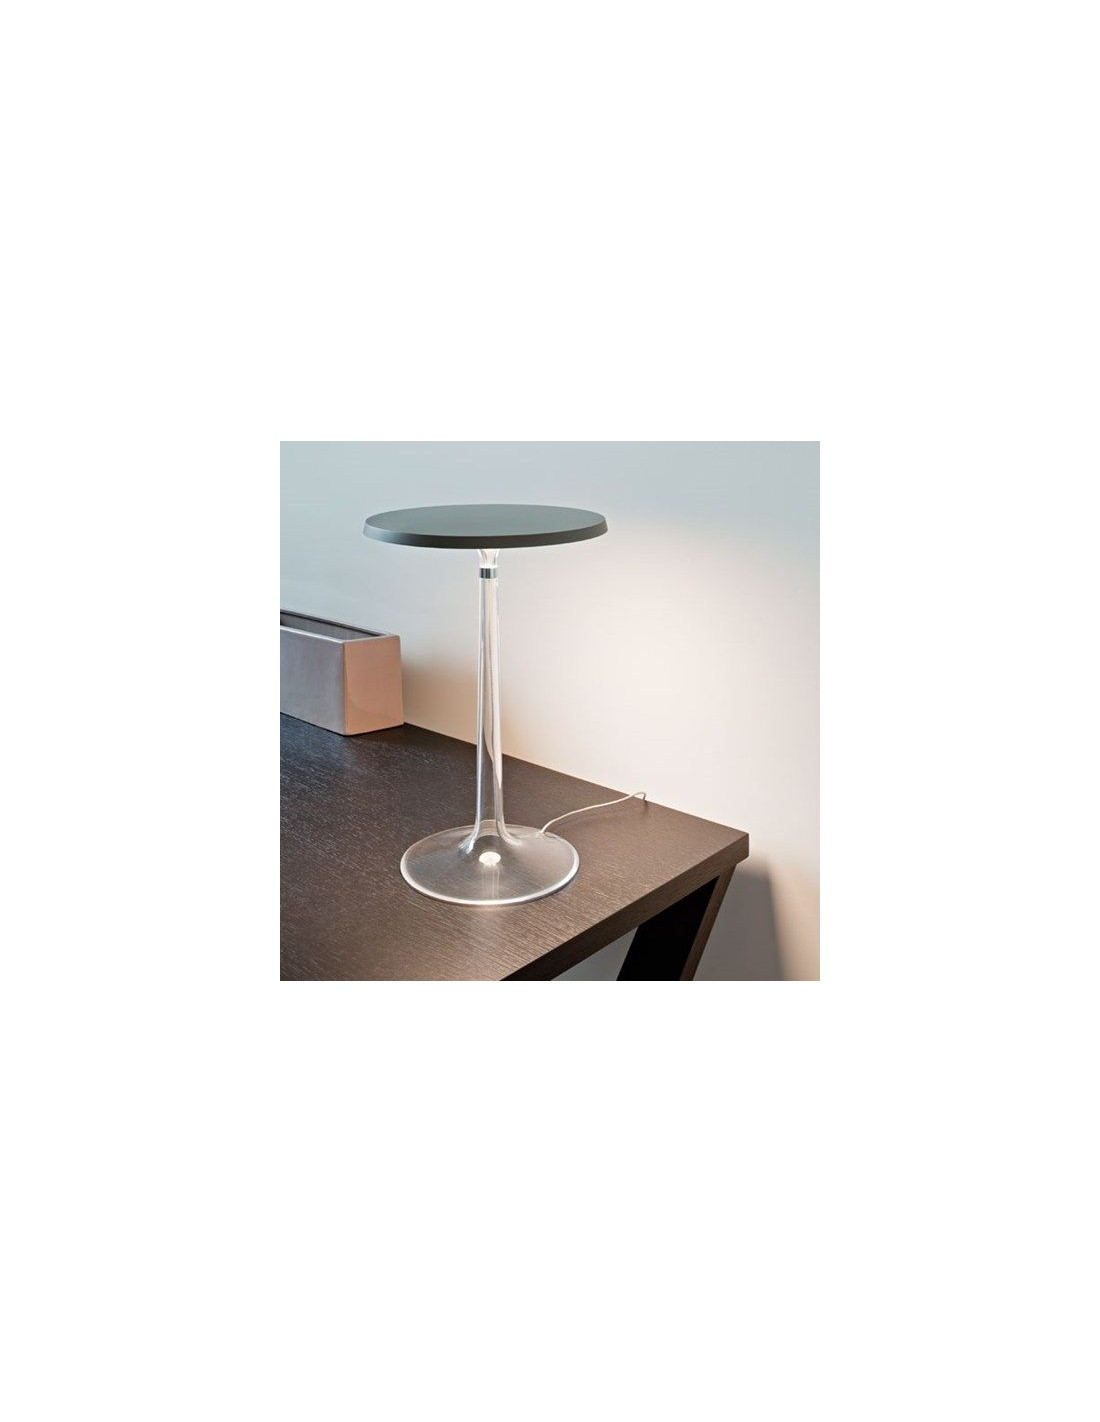 Lampe de table bon jour philippe starck de flos for Lampe de table rona